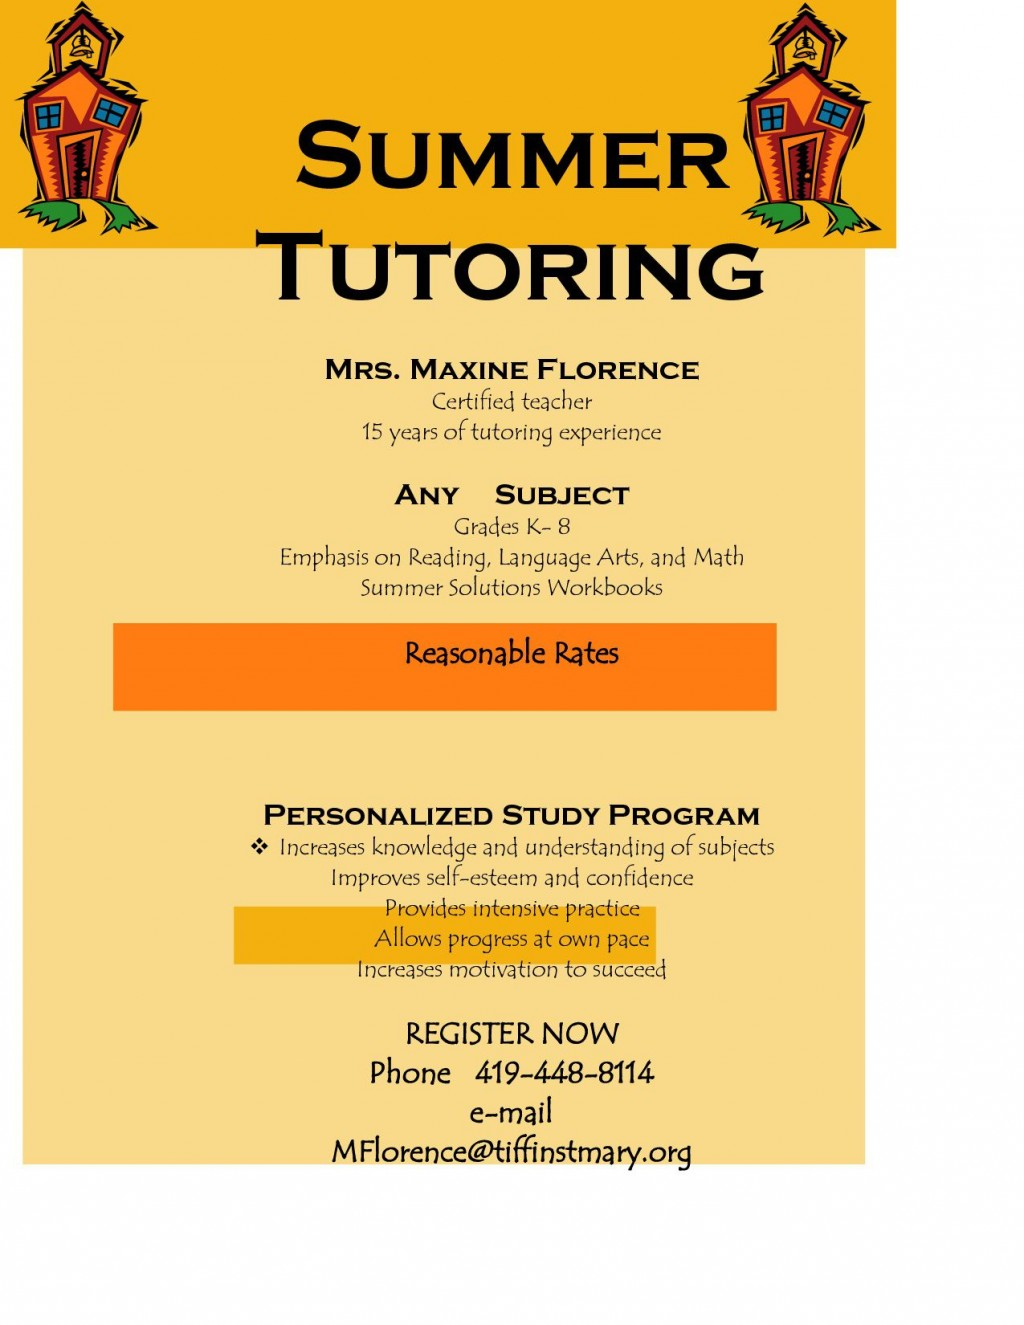 006 Excellent Tutoring Flyer Template Free Image  WordLarge